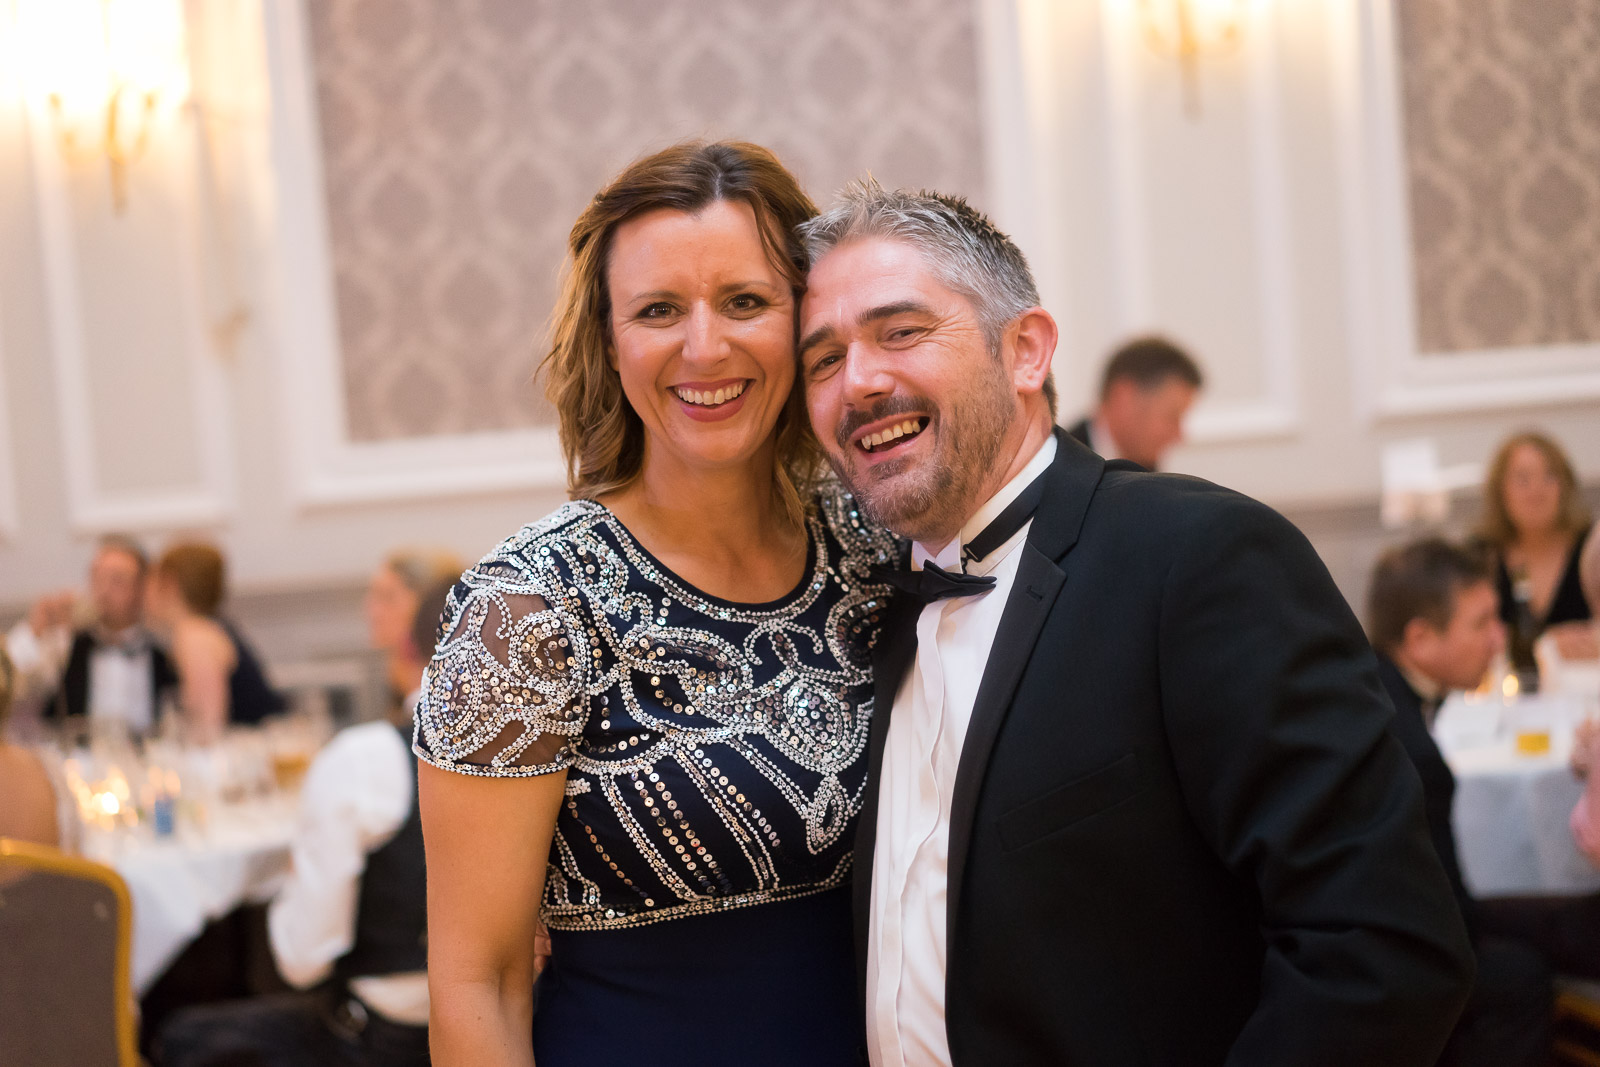 Vice-captain elect Gavin Carruthers and wife at last year's 125 Anniversary Ball